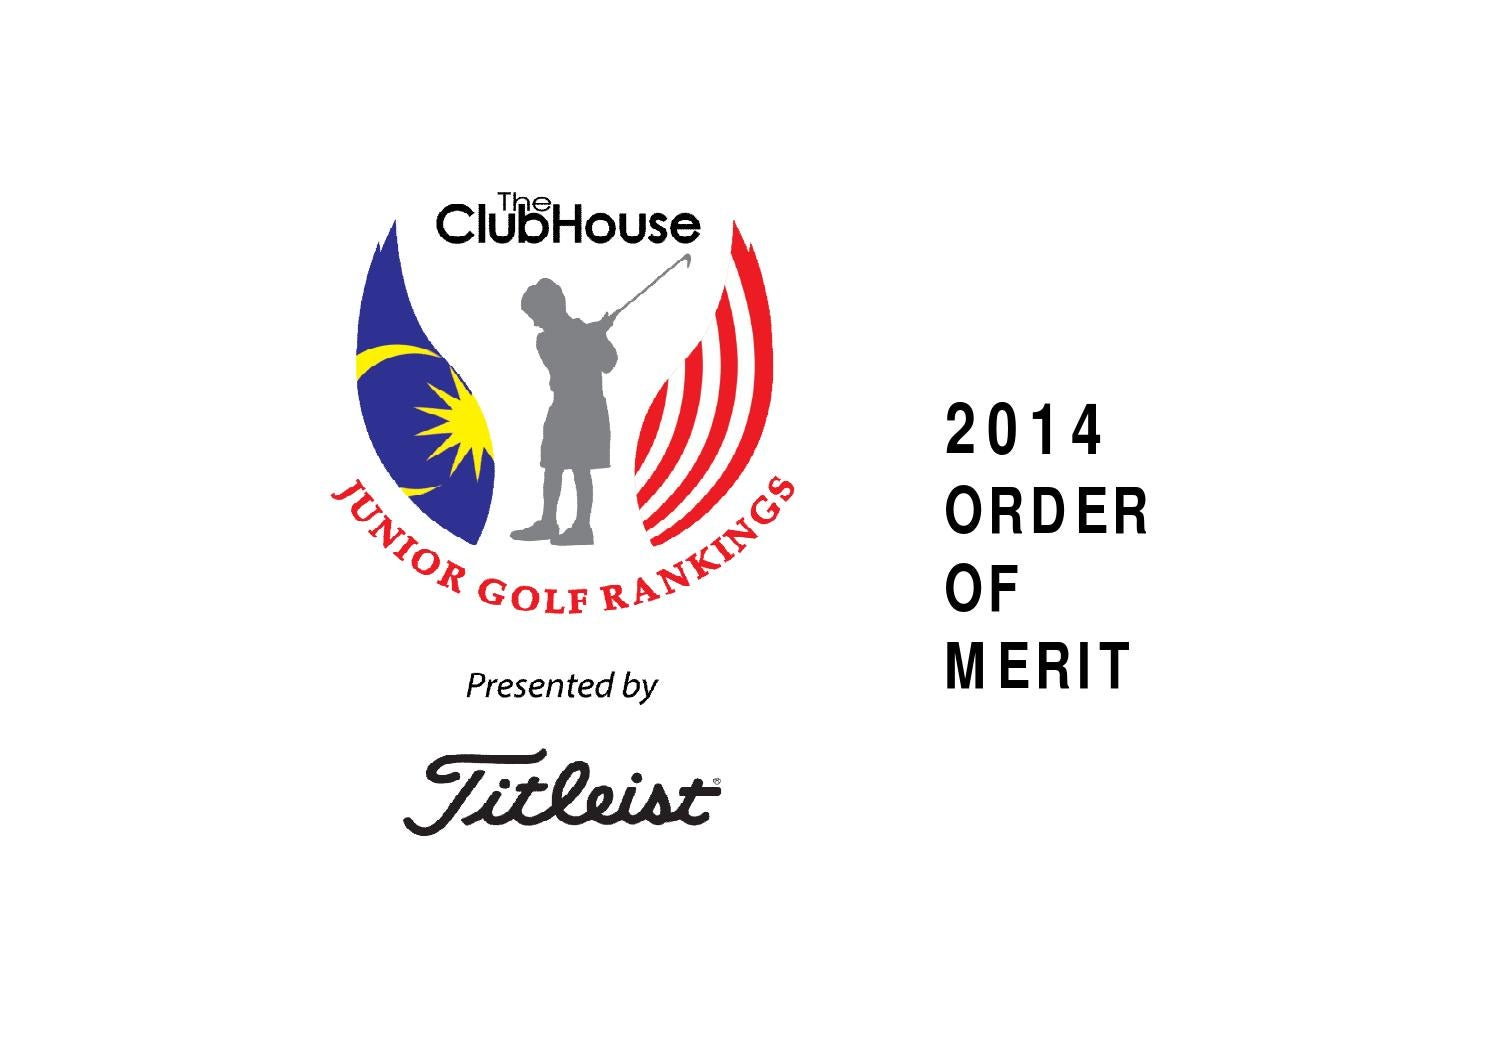 The ClubHouse Junior Golf Rankings presented by Titleist